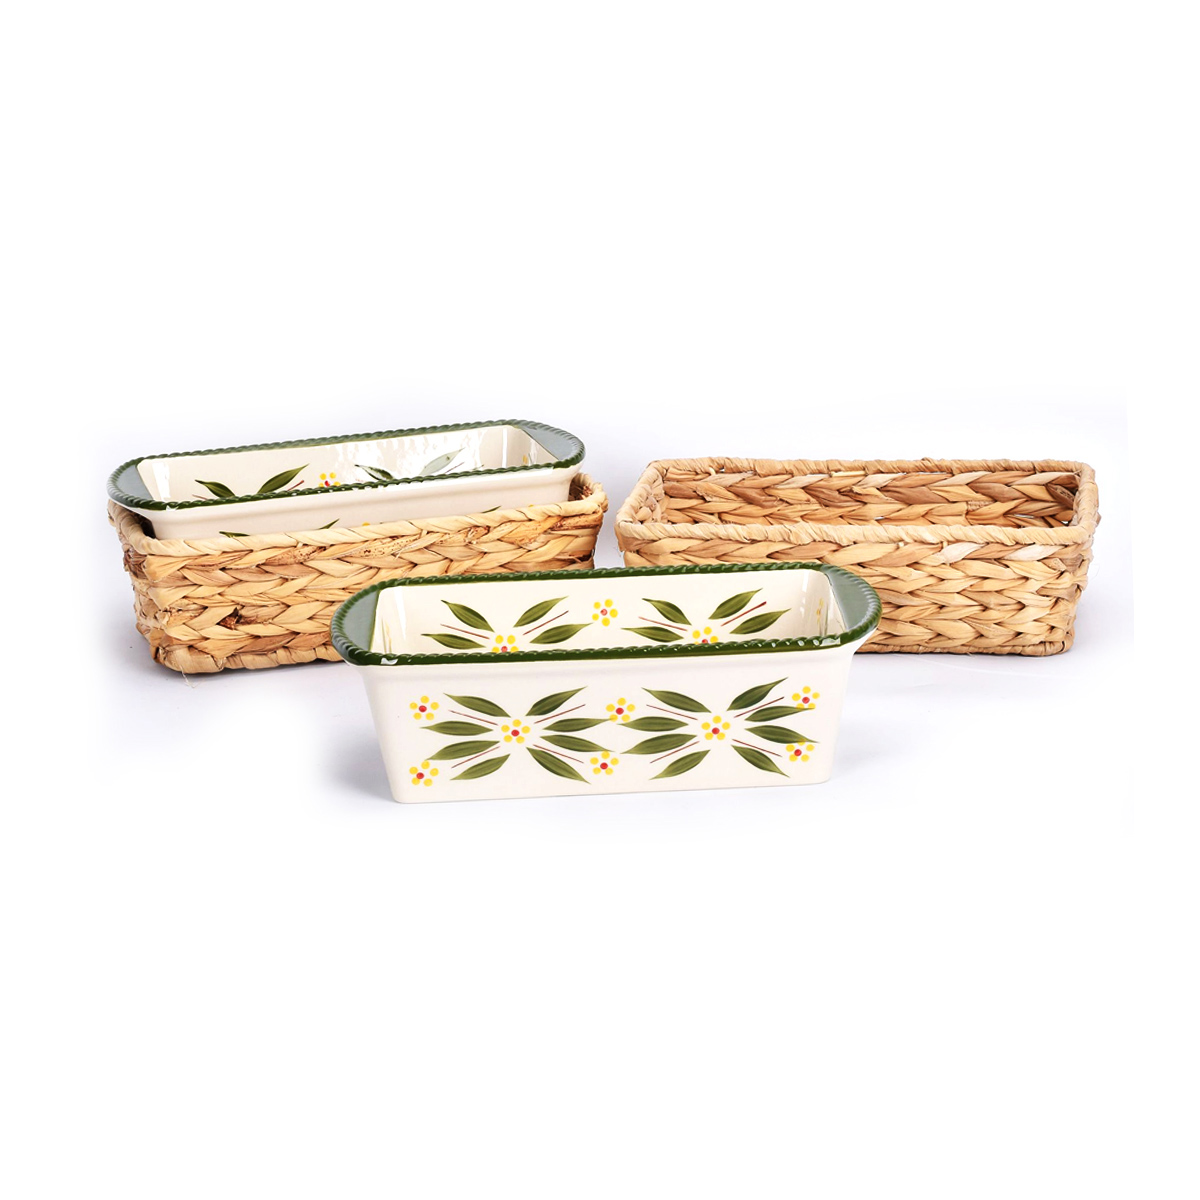 temp-tations® Old World Loaf Pans in Baskets – 4 Piece – Green